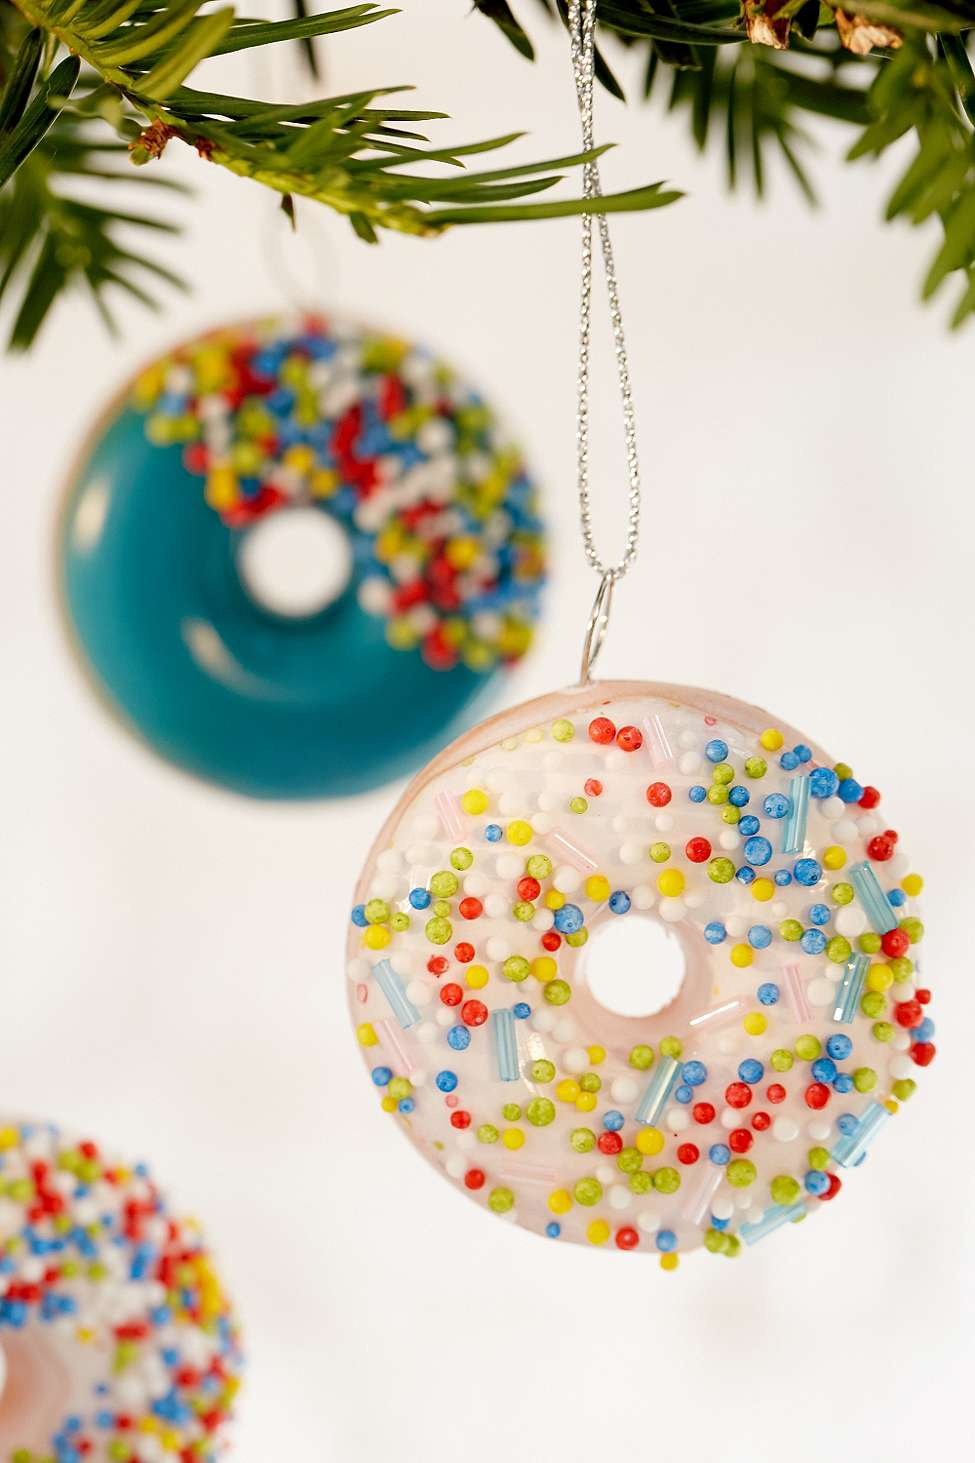 decoration-donuts-sapin_de_noel-02